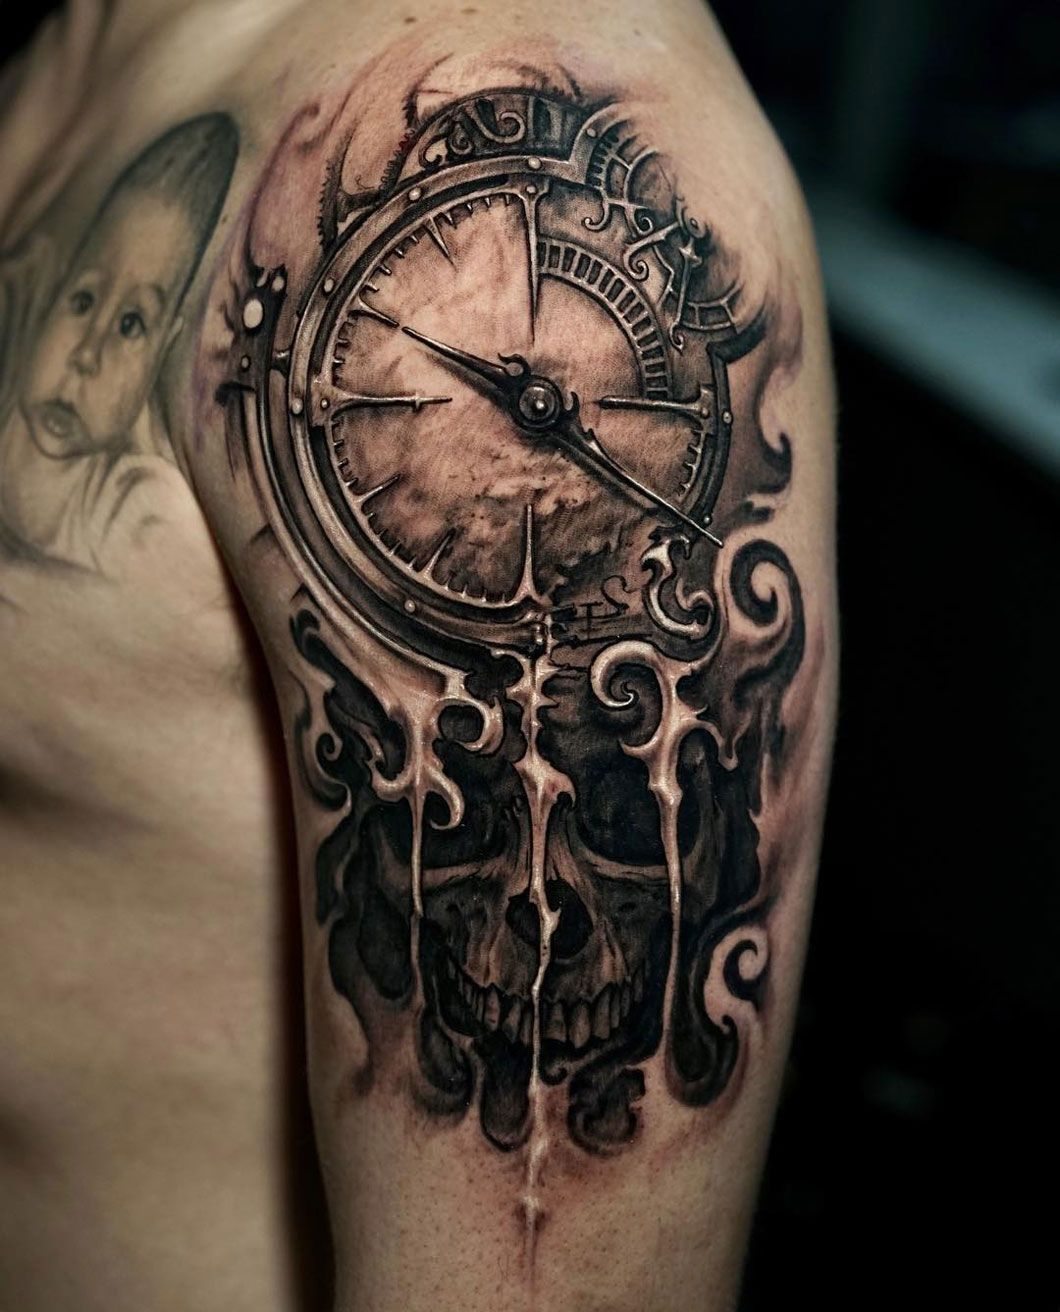 Clock & Skull Tattoos for guys, Cool tattoos for guys